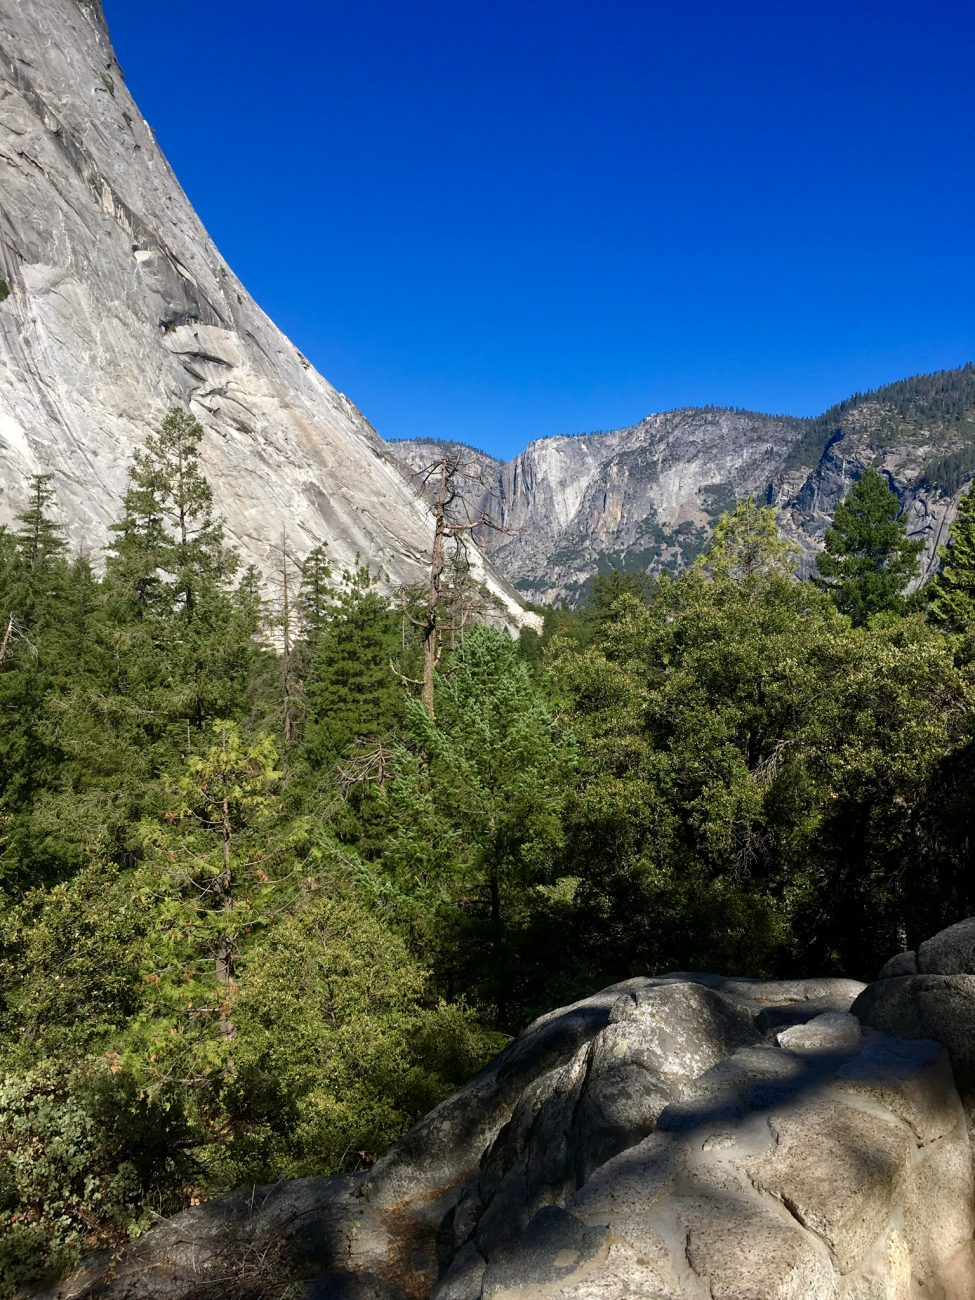 Vegan Yosemite Guide